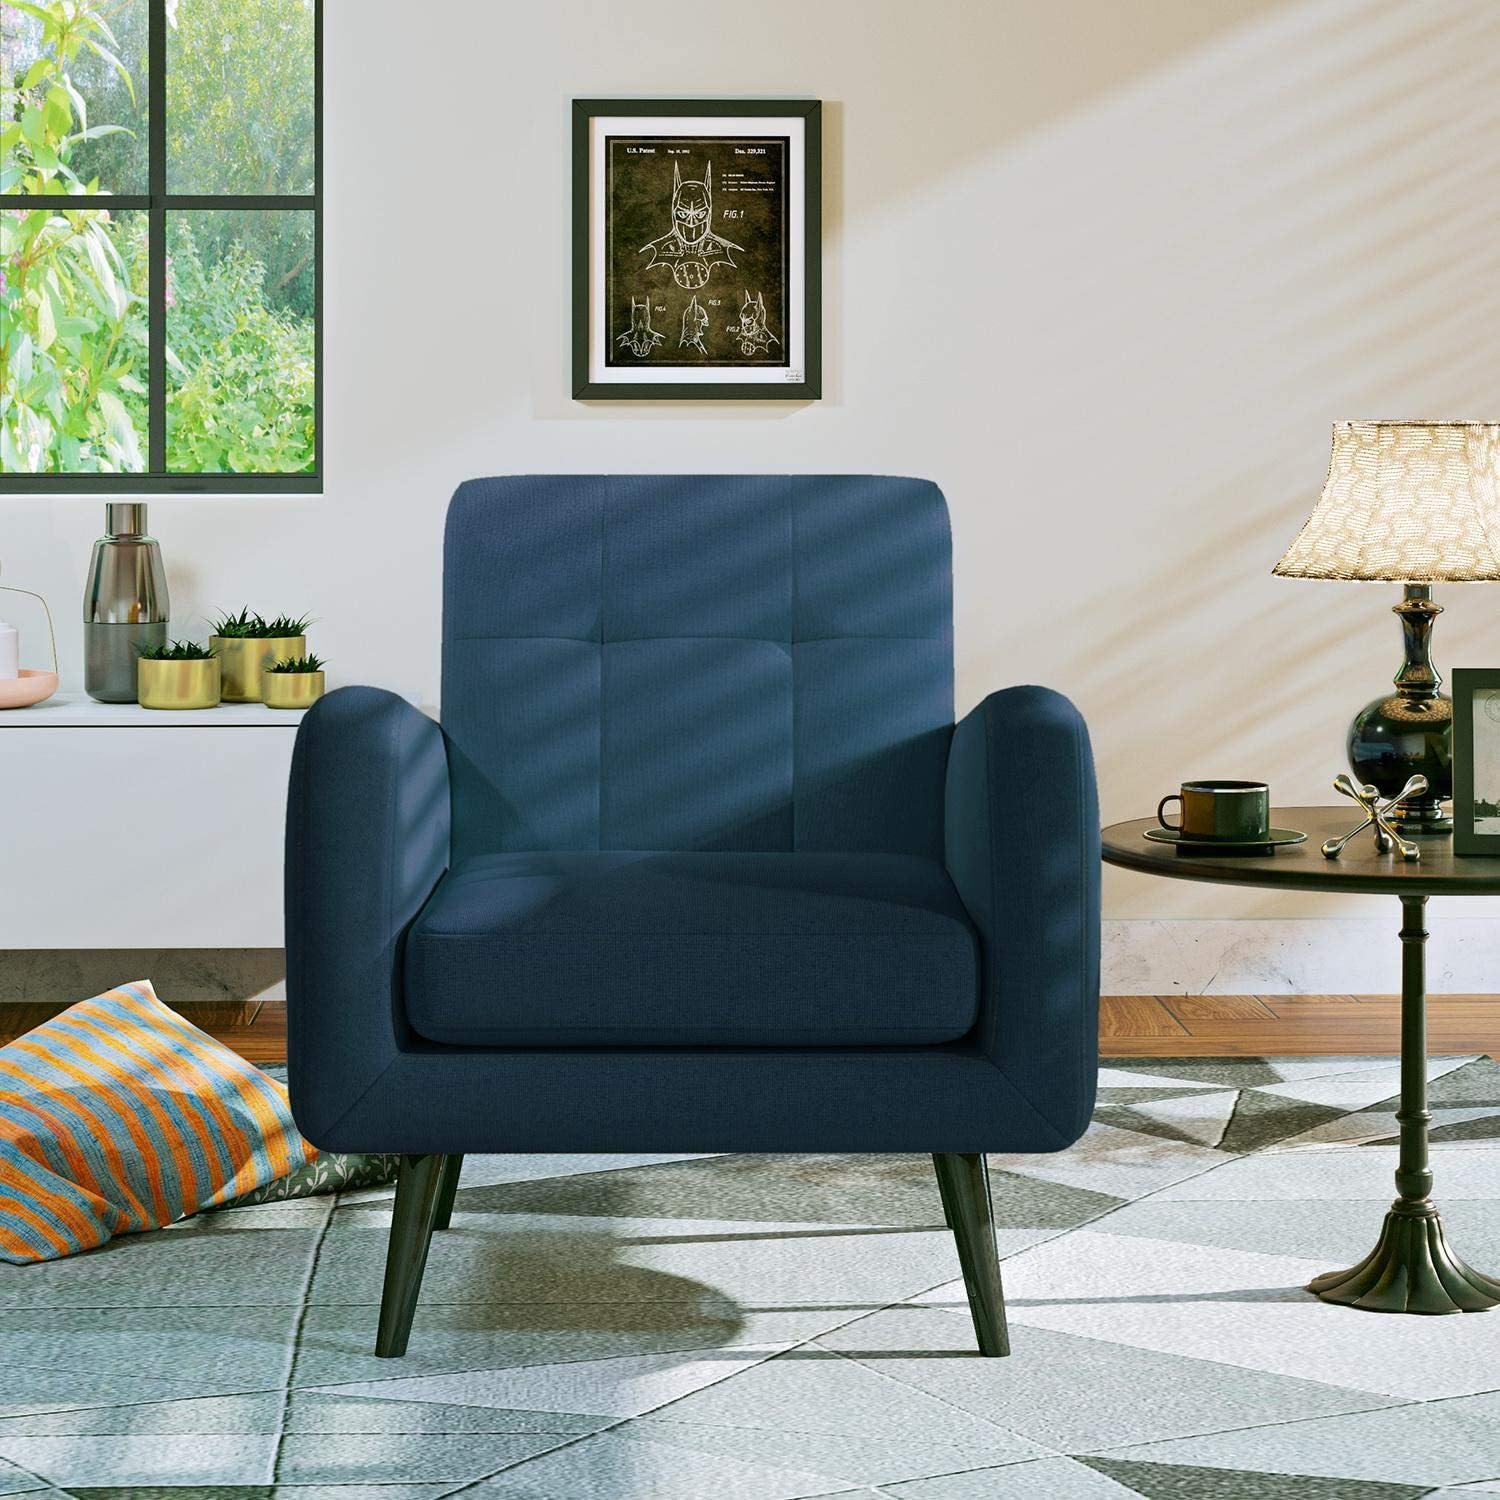 JustRoomy Modern Linen Fabric Armchair Accent Chair Bedroom Chair Living Room Chair Single Sofa Comfortable Upholstered Arm Chair with Tapered Legs for Small Spaces, Dark Blue